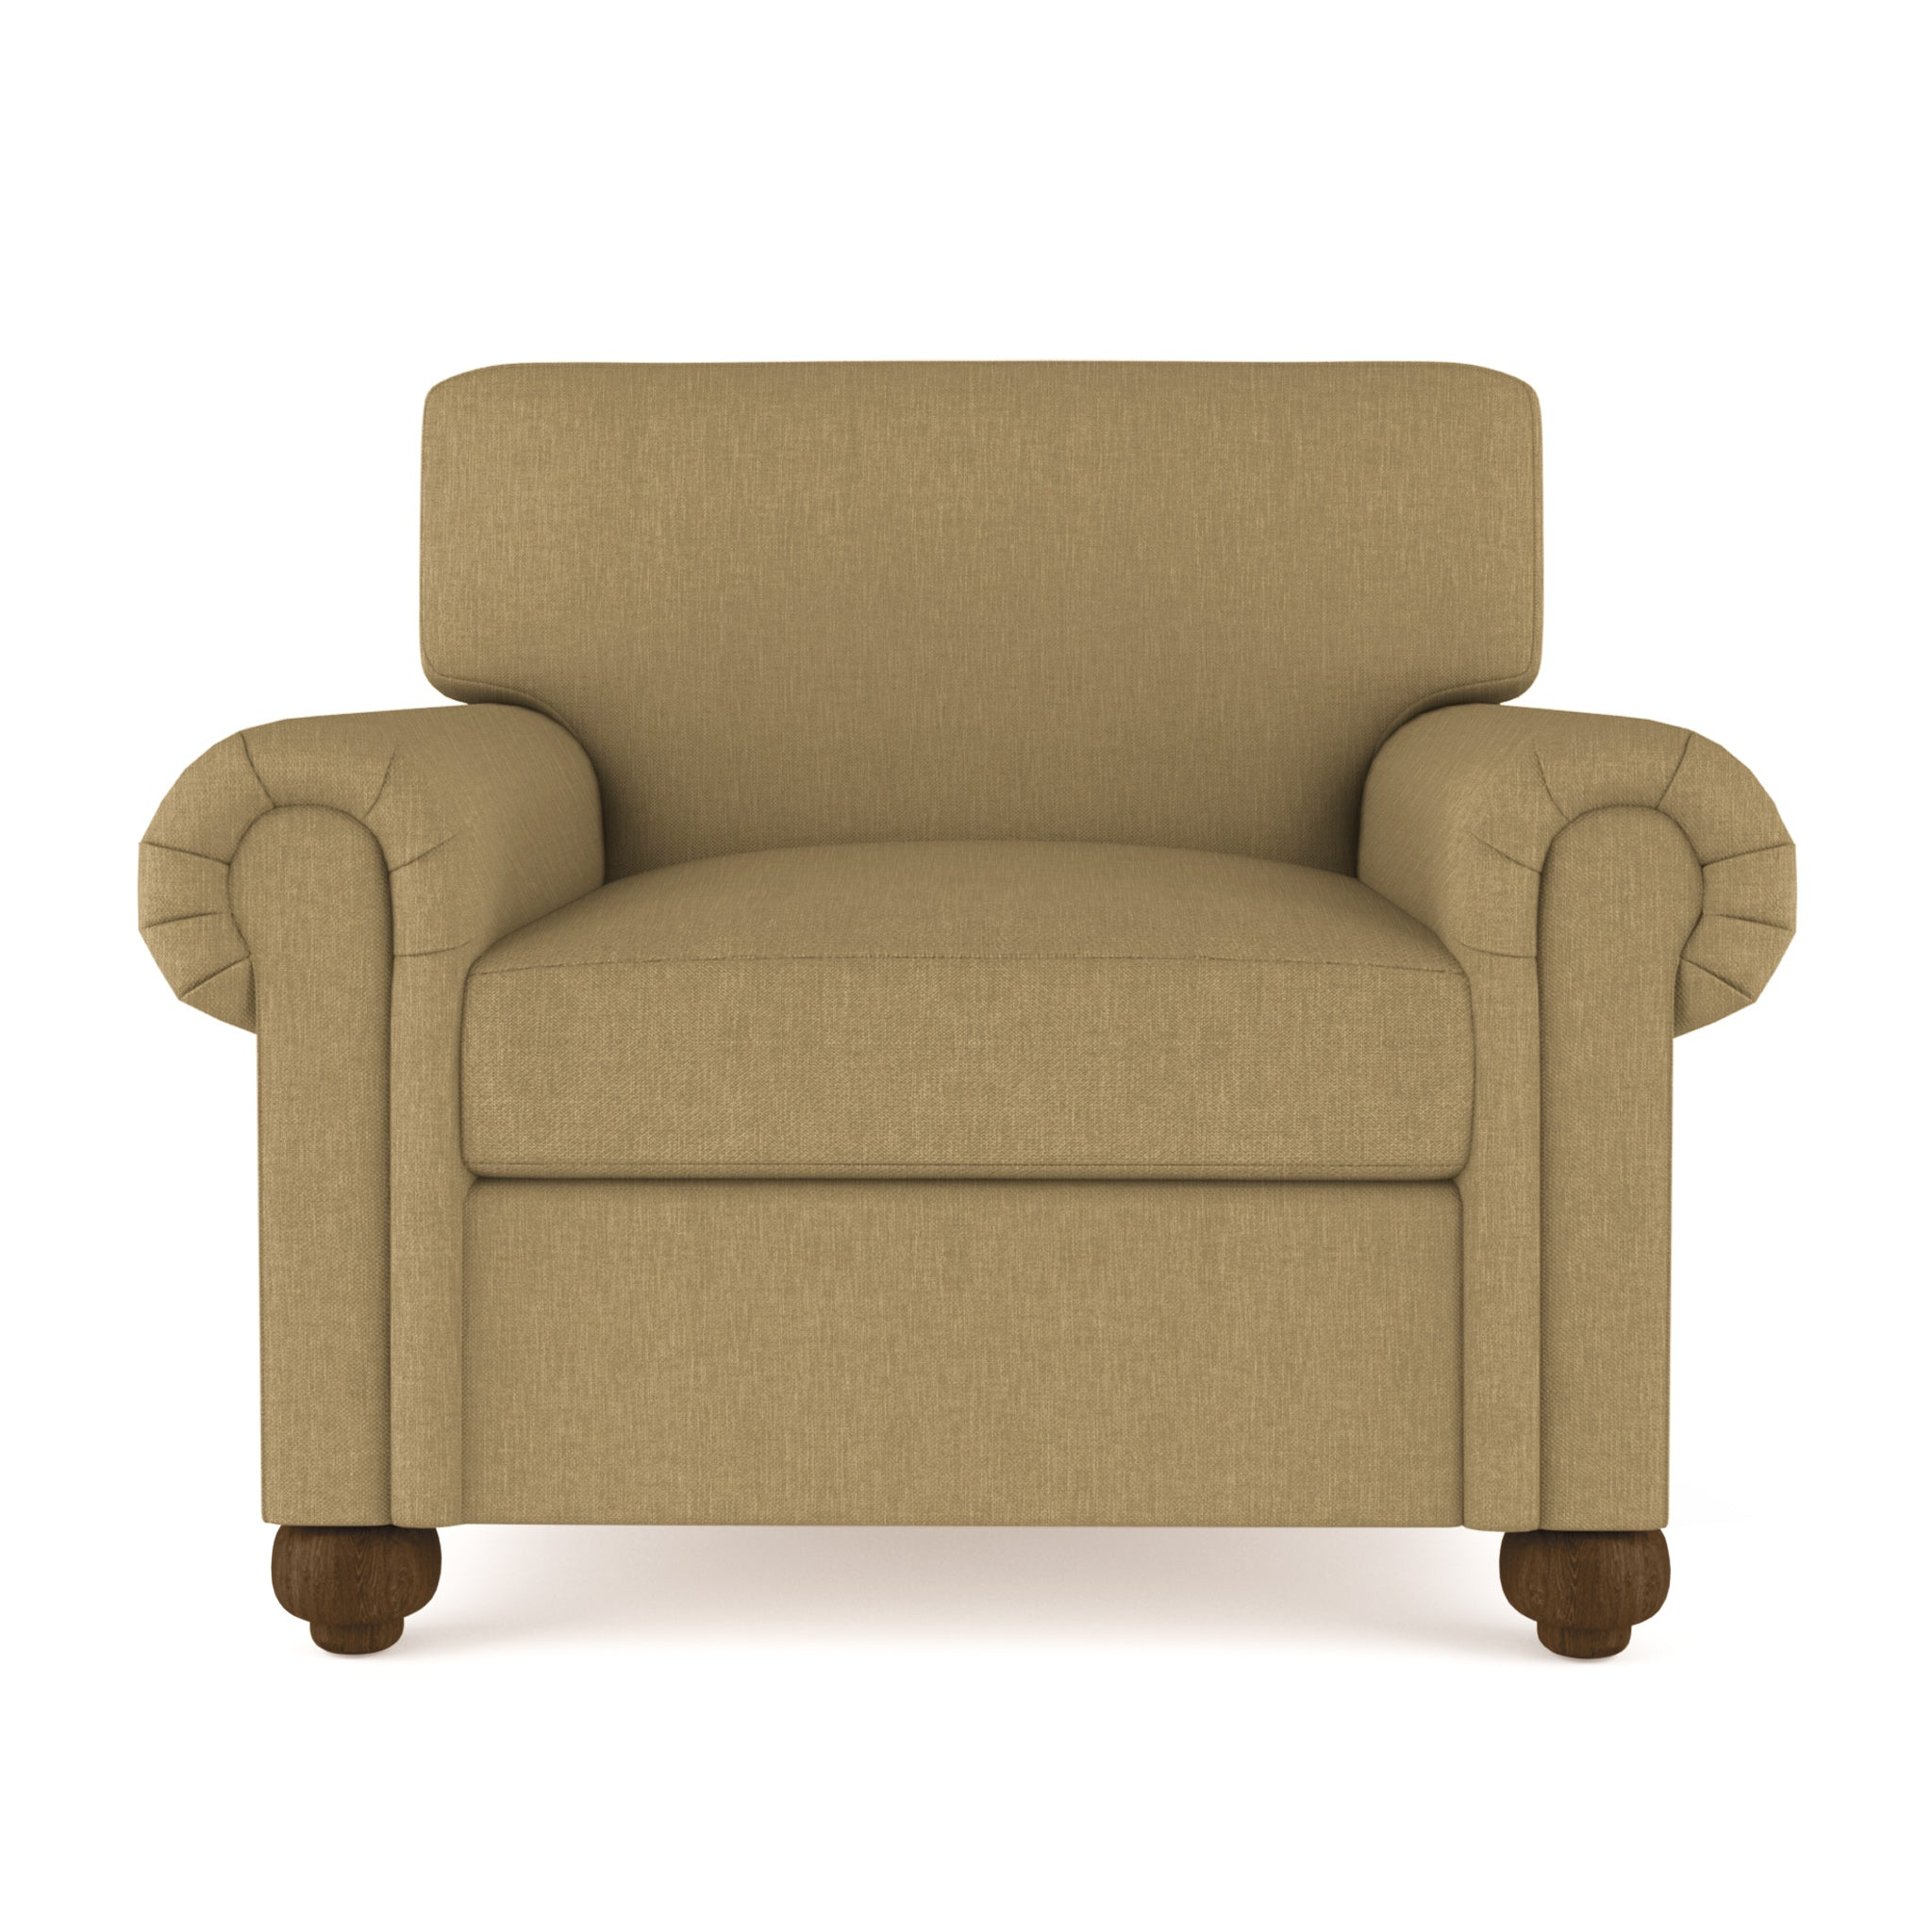 Leroy Chair - Marzipan Box Weave Linen